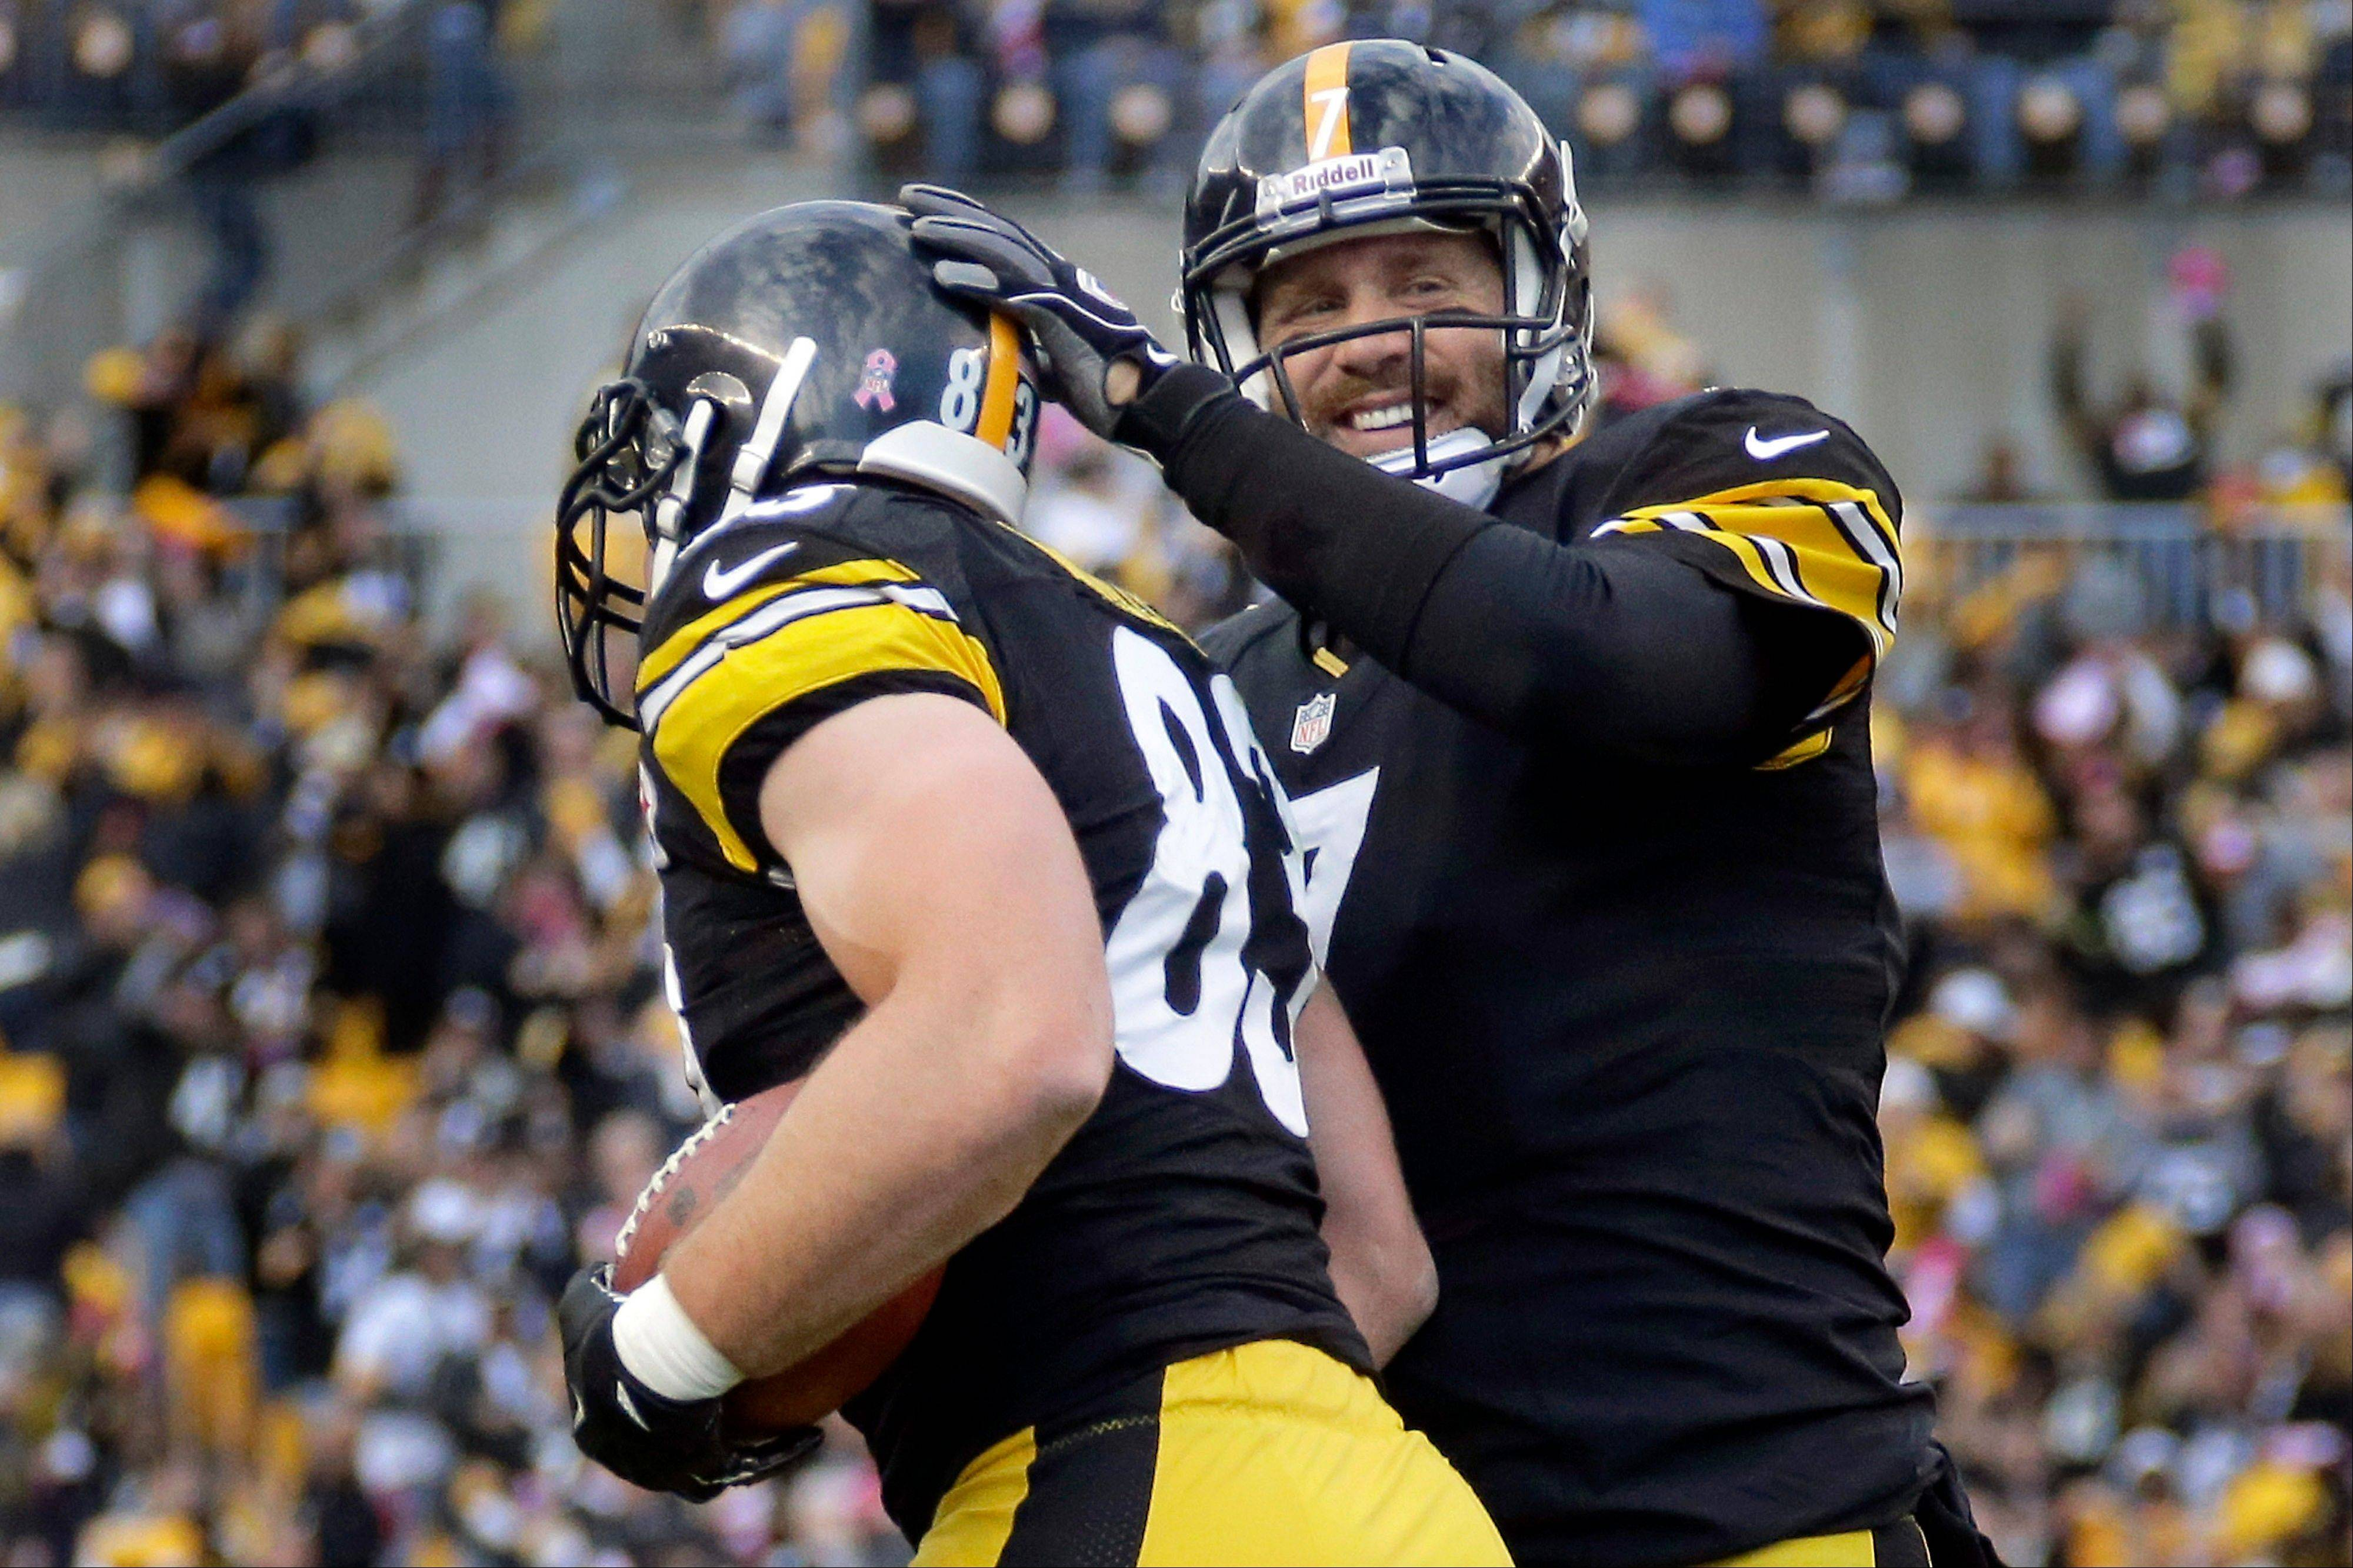 Pittsburgh Steelers quarterback Ben Roethlisberger, right, greets tight end Heath Miller after Miller caught Roethlisberger's pass for a touchdown in the first quarter of an NFL football game against the Baltimore Ravens in Pittsburgh on Sunday, Oct 20, 2013.